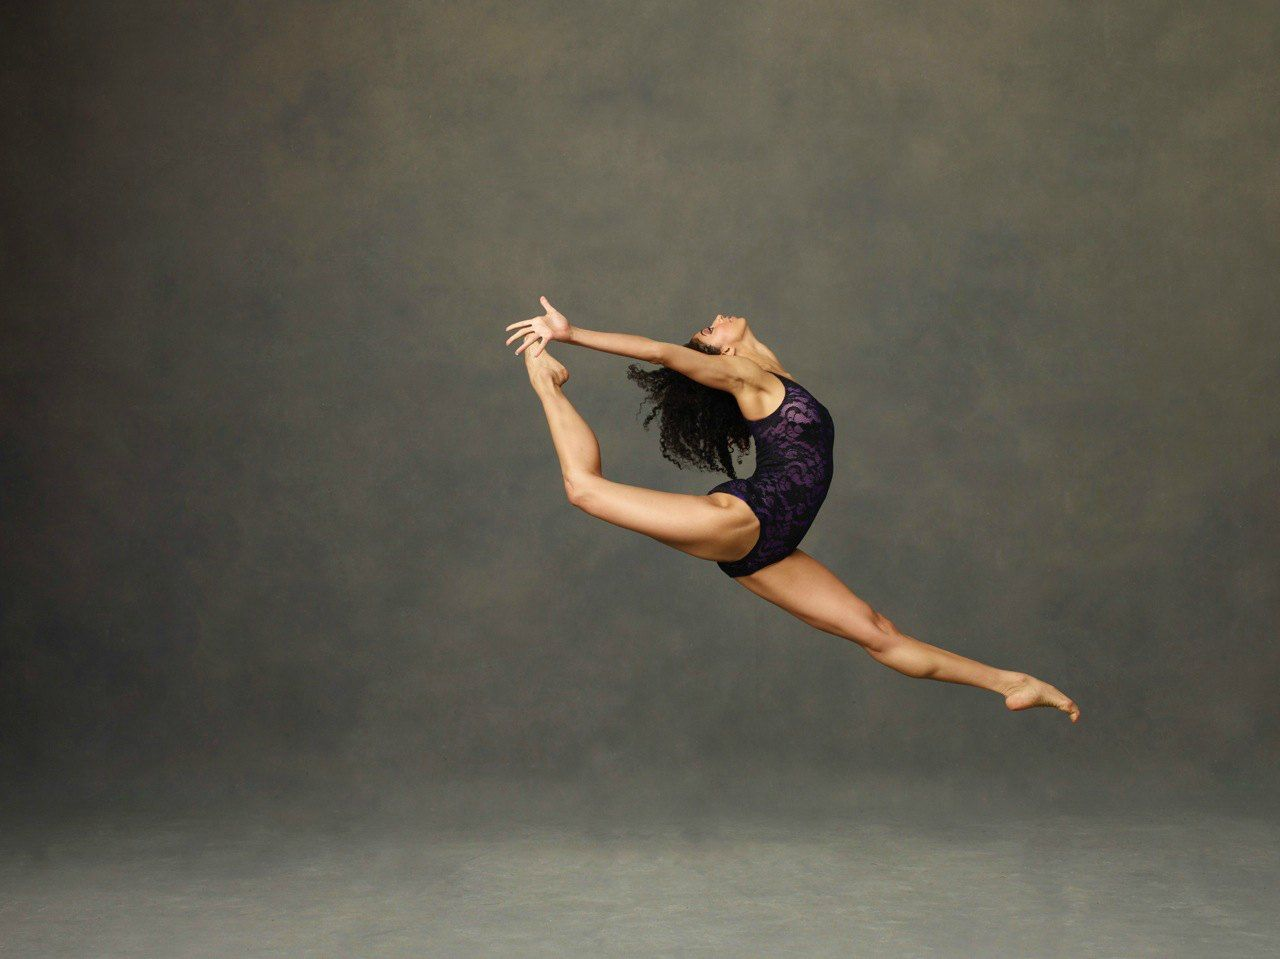 Get That Life How I Became A Professional Ballerina